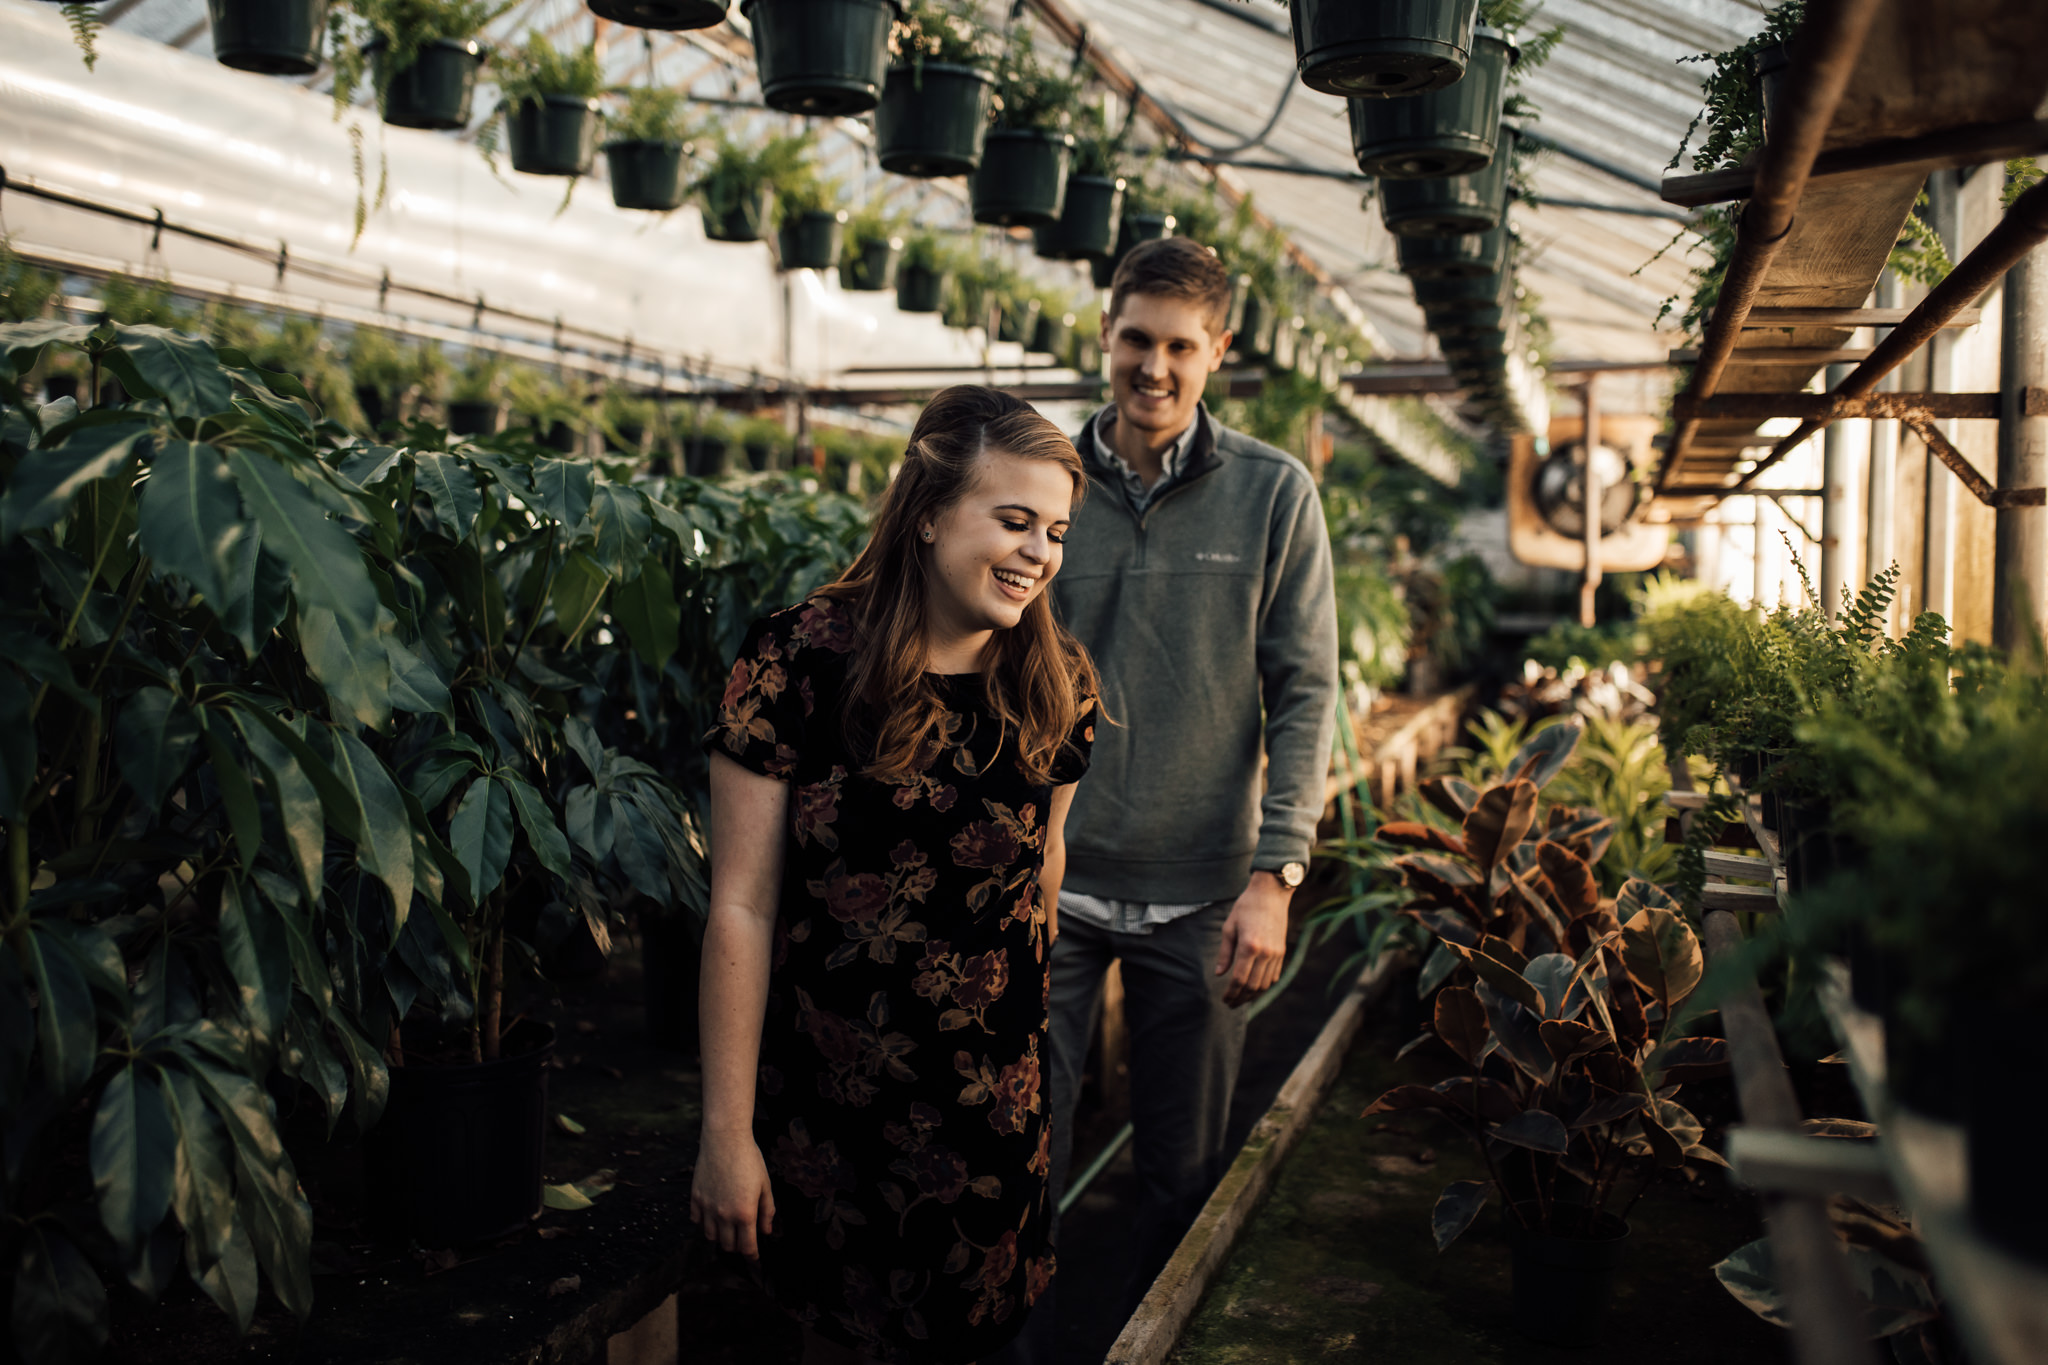 memphis-wedding-photographer-greenhouse-engagement-pictures-cassie-cook-photography-22.jpg